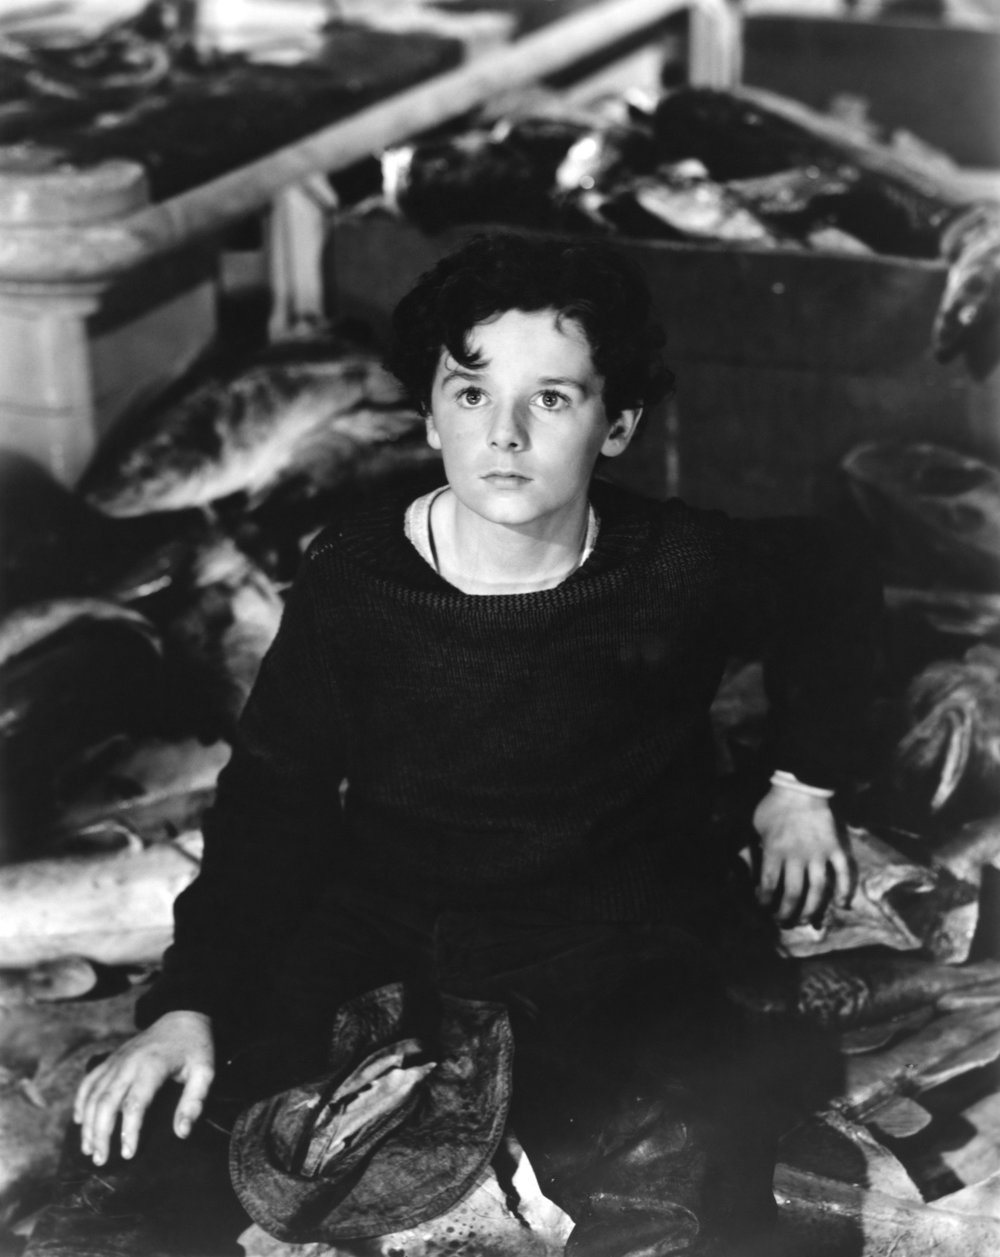 """The Face of Holden: Freddie Bartholomew in Captains Courageous  (1937)    In chapter 13 of  The Catcher in the Rye , when Holden is talking with a prostitute named Sunny, she says that Holden looks like the boy who fell off the boat in a movie she saw.   That movie, as identified by Peter Beidler in his book  A Reader's Companion to J.D. Salinger's """"The Catcher in the Rye"""" , is   Captains Courageous  (1937) starring Spencer Tracy.   The boy who fell off the boat was played by child-actor Freddie Bartholomew. Based on the reference from the book, Bartholomew was Salinger's model for Holden Caulfield.    Here's a picture of the actor closer to Holden's age .    Is this the face you had in mind? Let me know in the comments."""